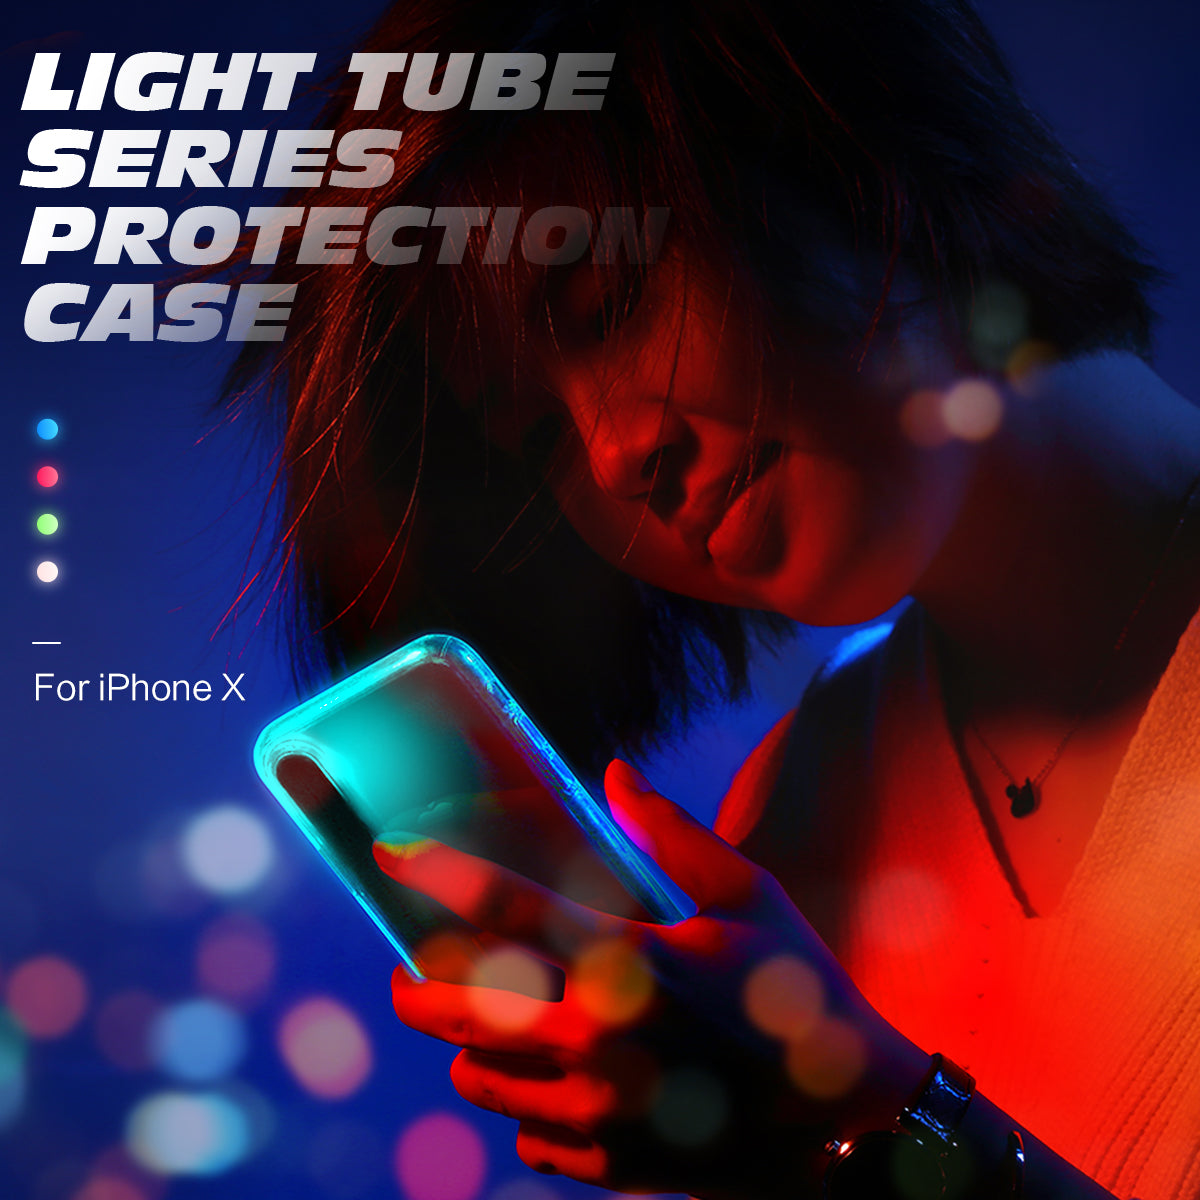 For Iphone X Caseled Flash Light Calling Notice Alert Phone Rock Tube Bumper Original Case 6 6s Features Led Protection Cover Function Anti Knock Compatible Brand Apple Iphones Type Fitted Name